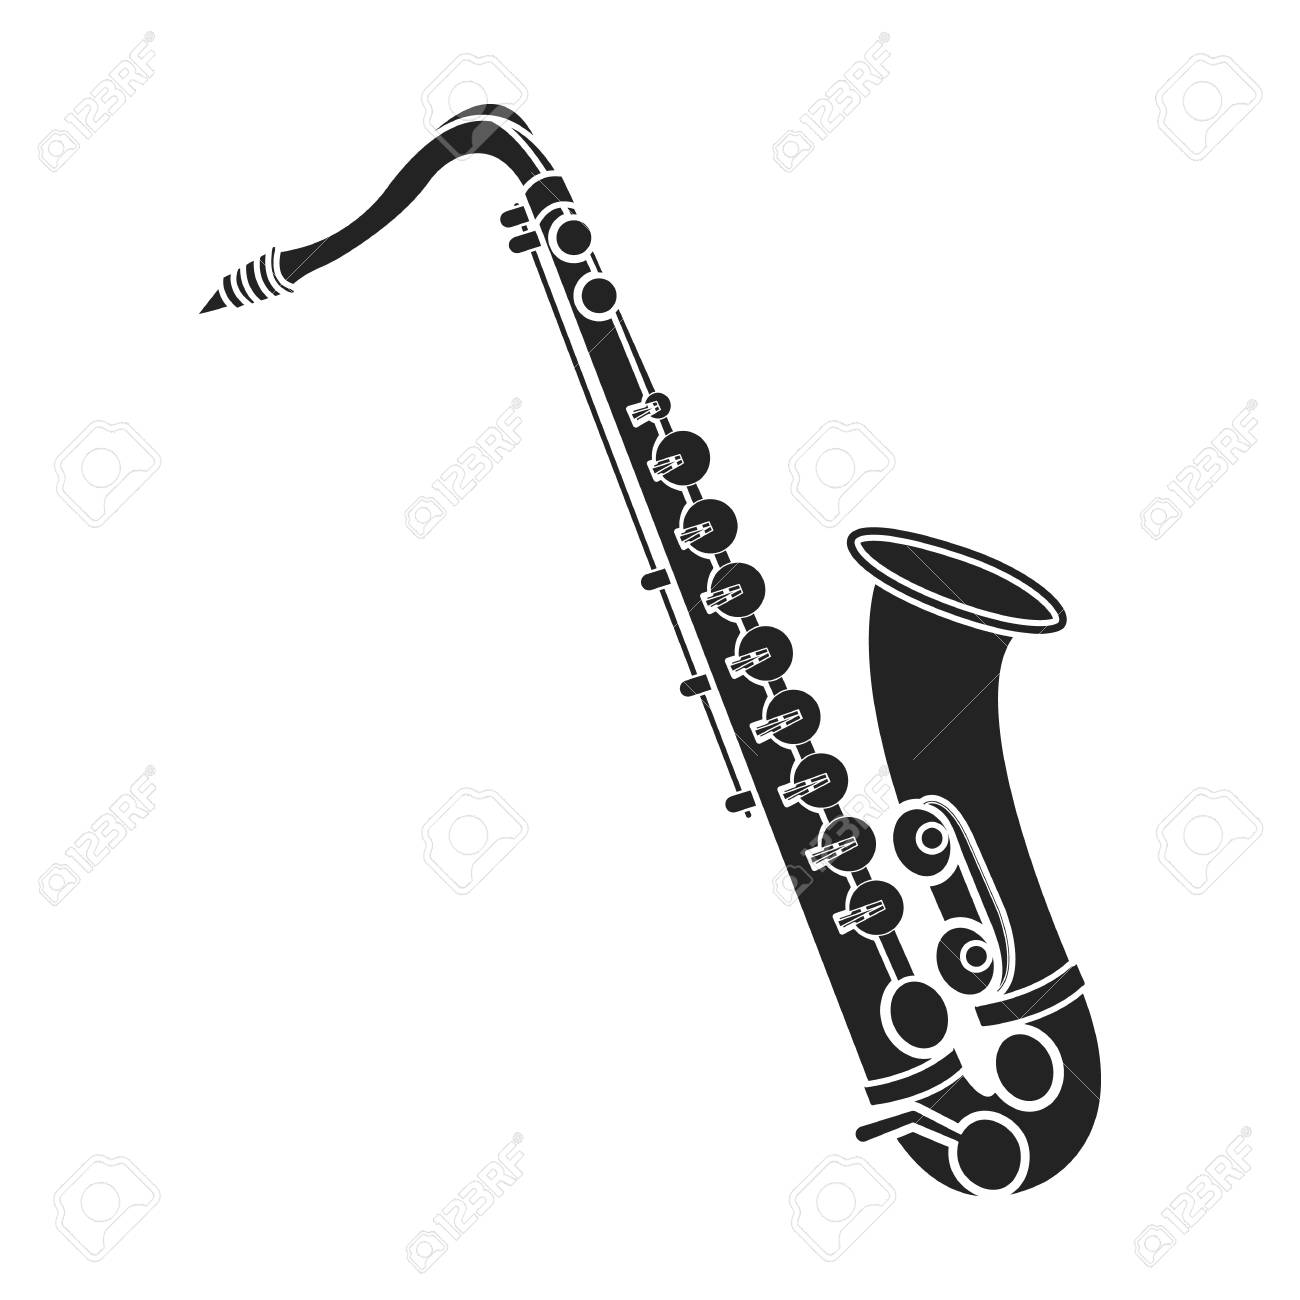 Schranke Clipart Saxophone Icon In Black Style Isolated On White Background